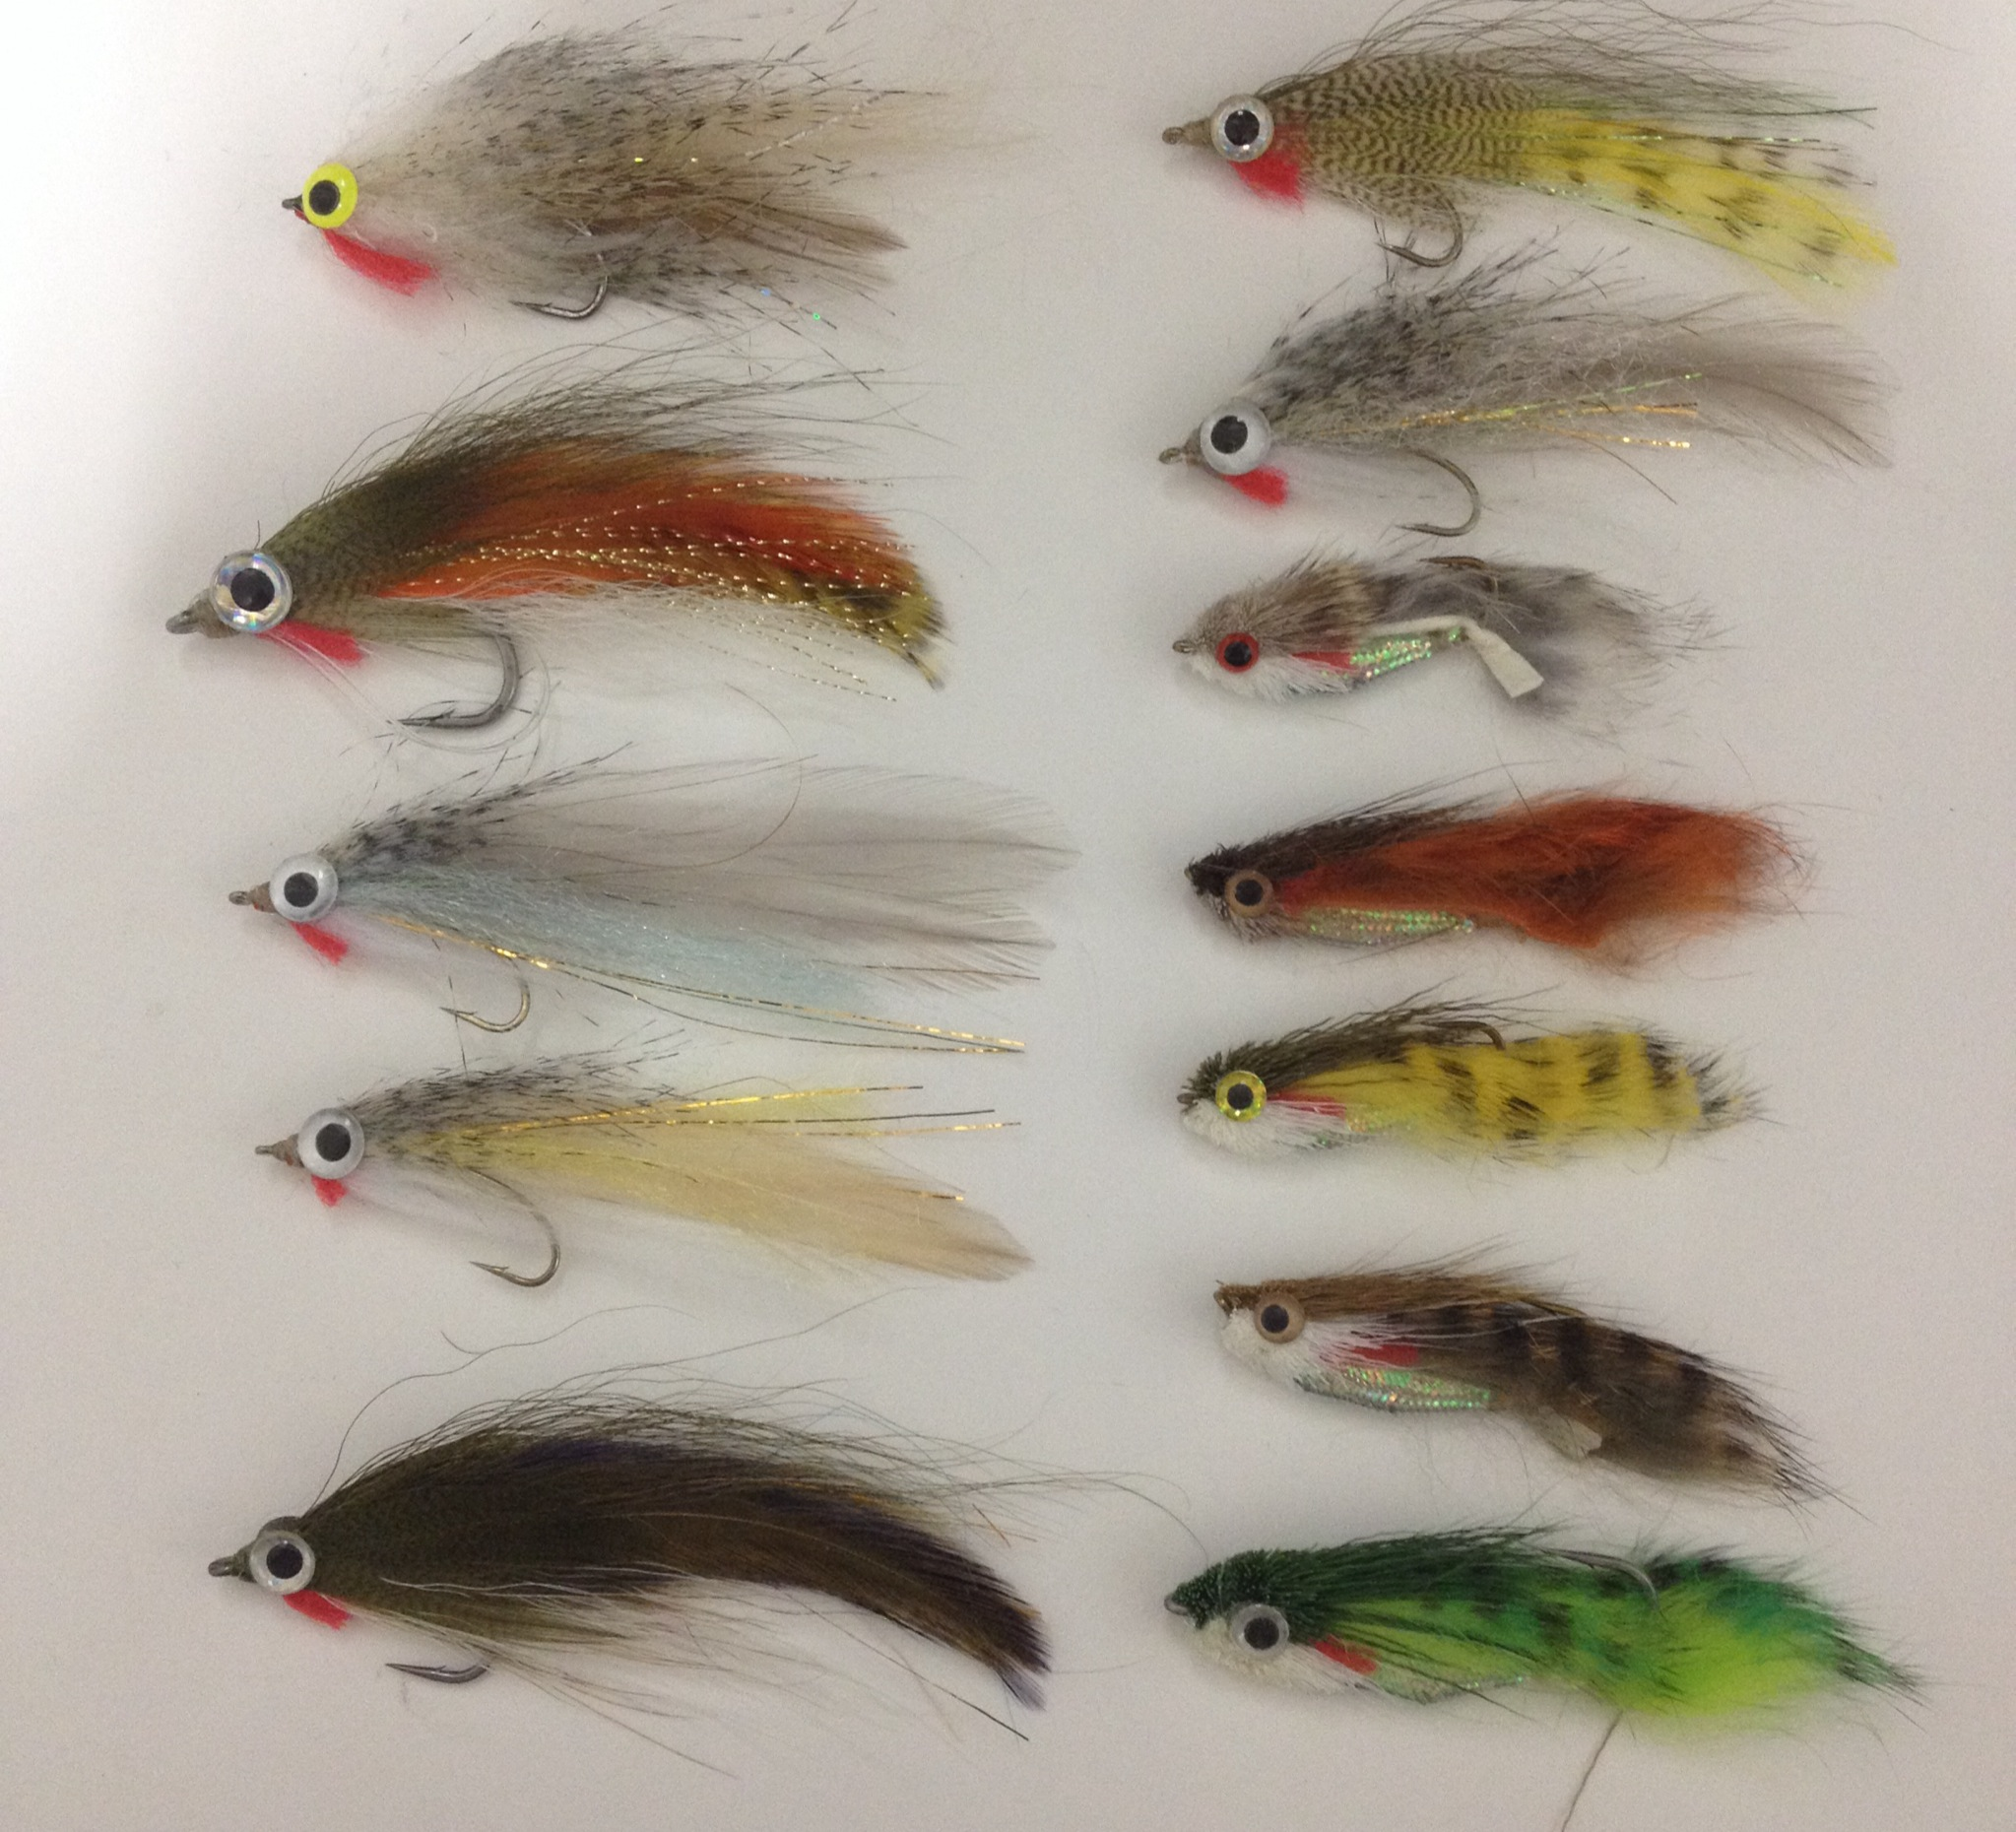 fishin envy | page 2, Fly Fishing Bait